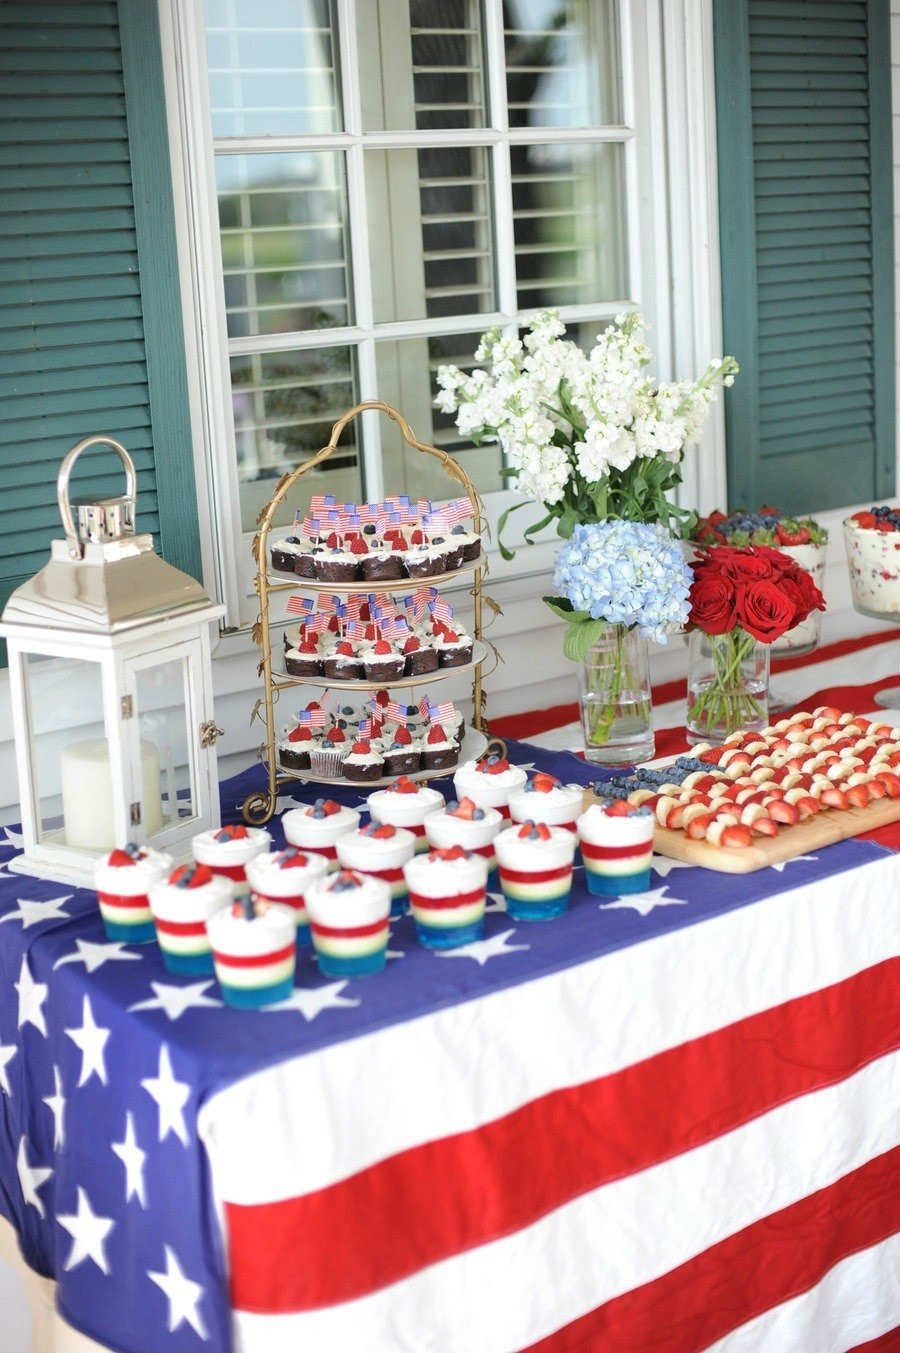 10 Lovely Fourth Of July Decoration Ideas 10 fourth of july decoration ideas tinyme blog 4 2021